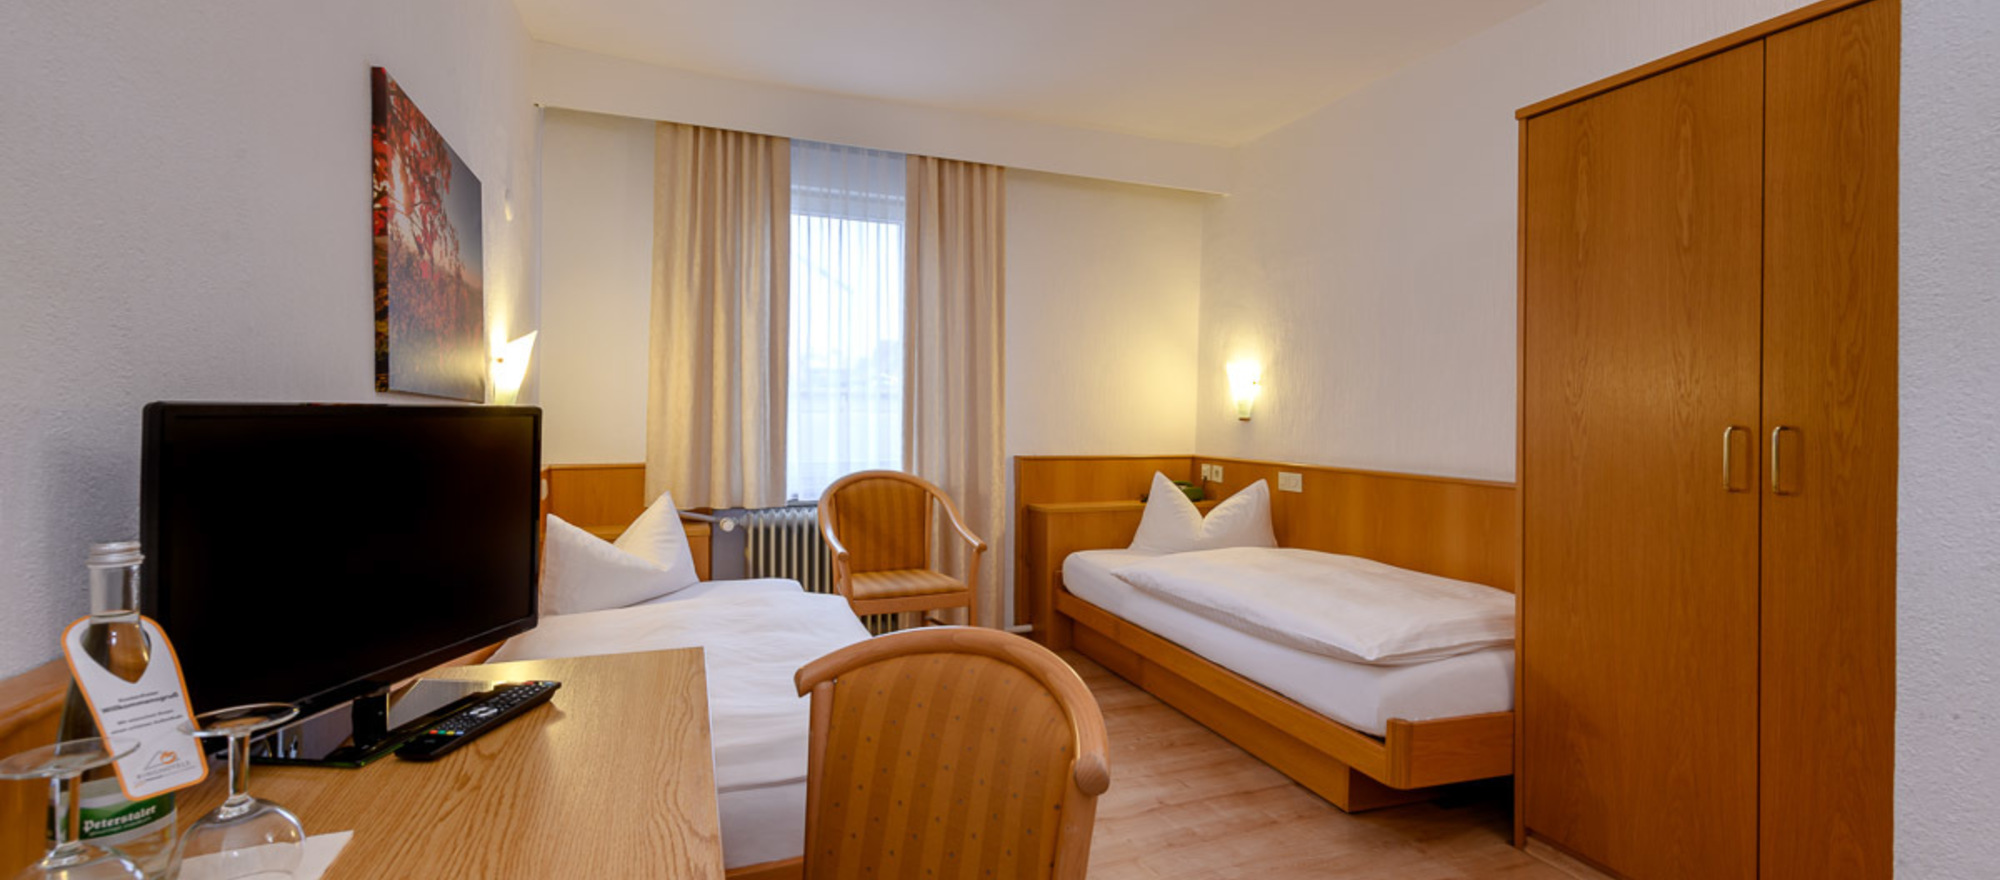 Ringhotel Pflug in Oberkirch twin room example